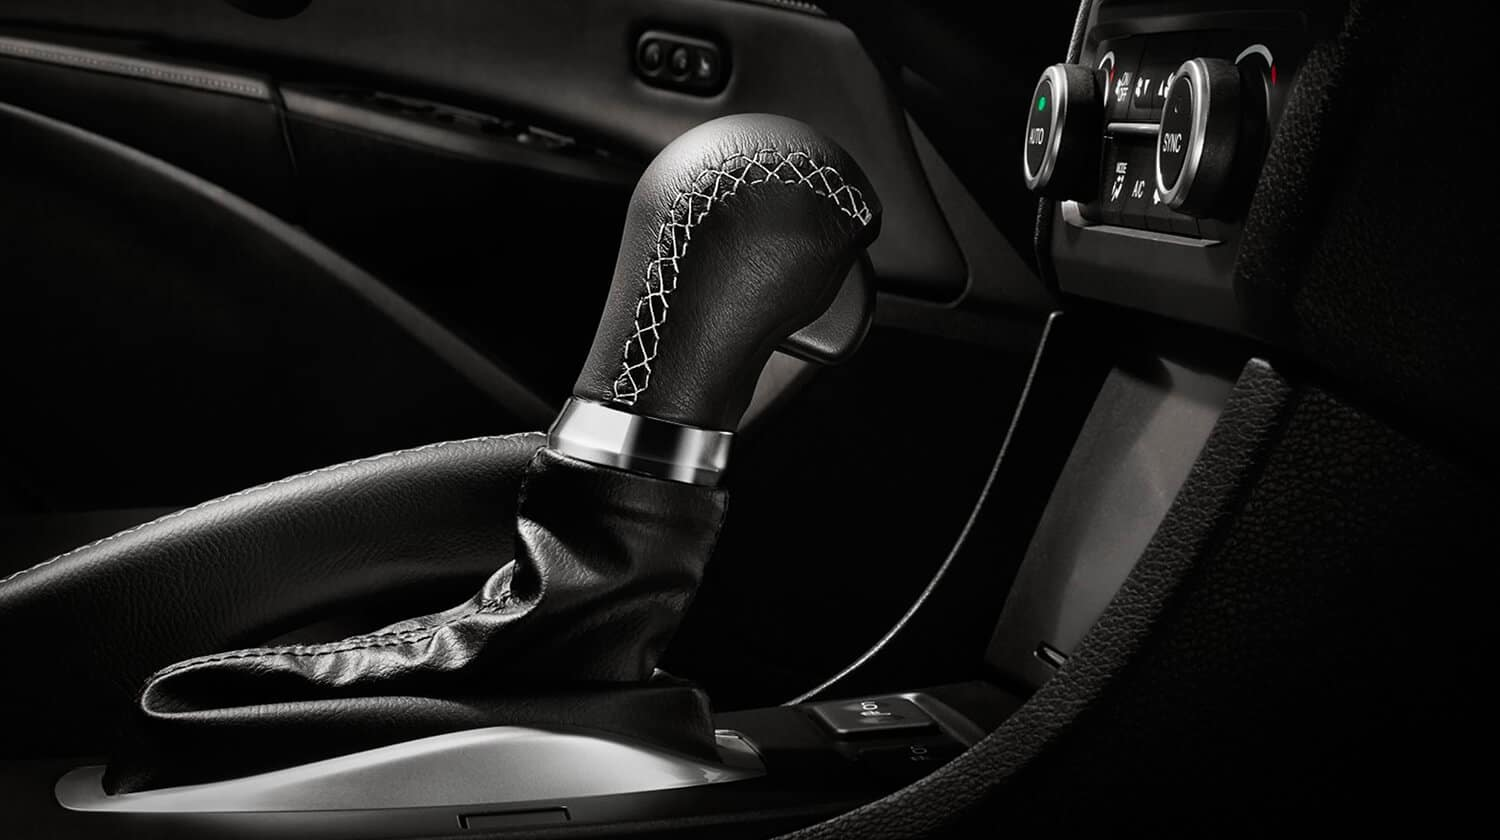 2018 Acura ILX Interior Gear Shifter